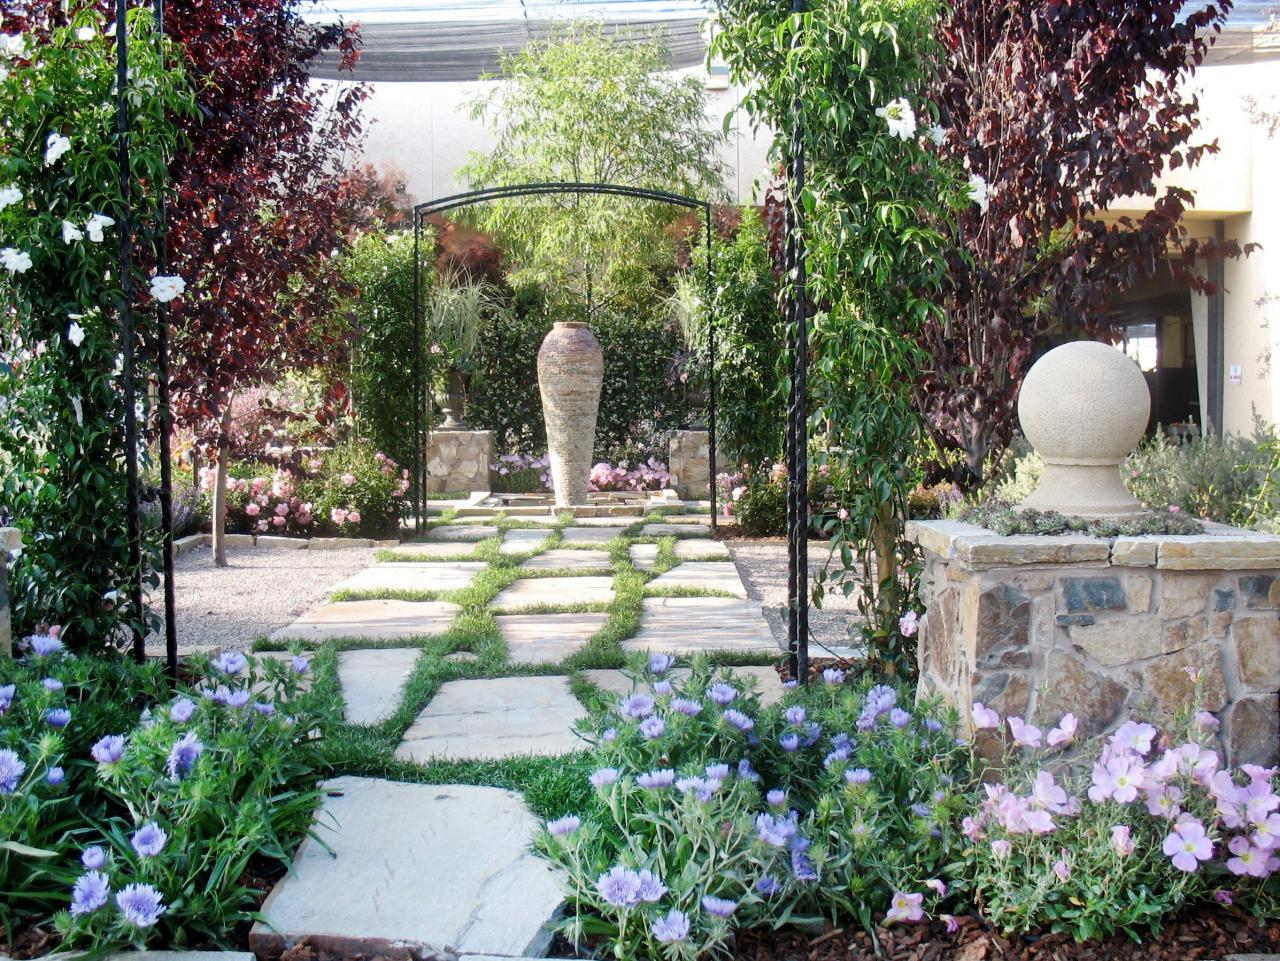 Landscaping ideas and hardscape design hgtv for Country garden ideas